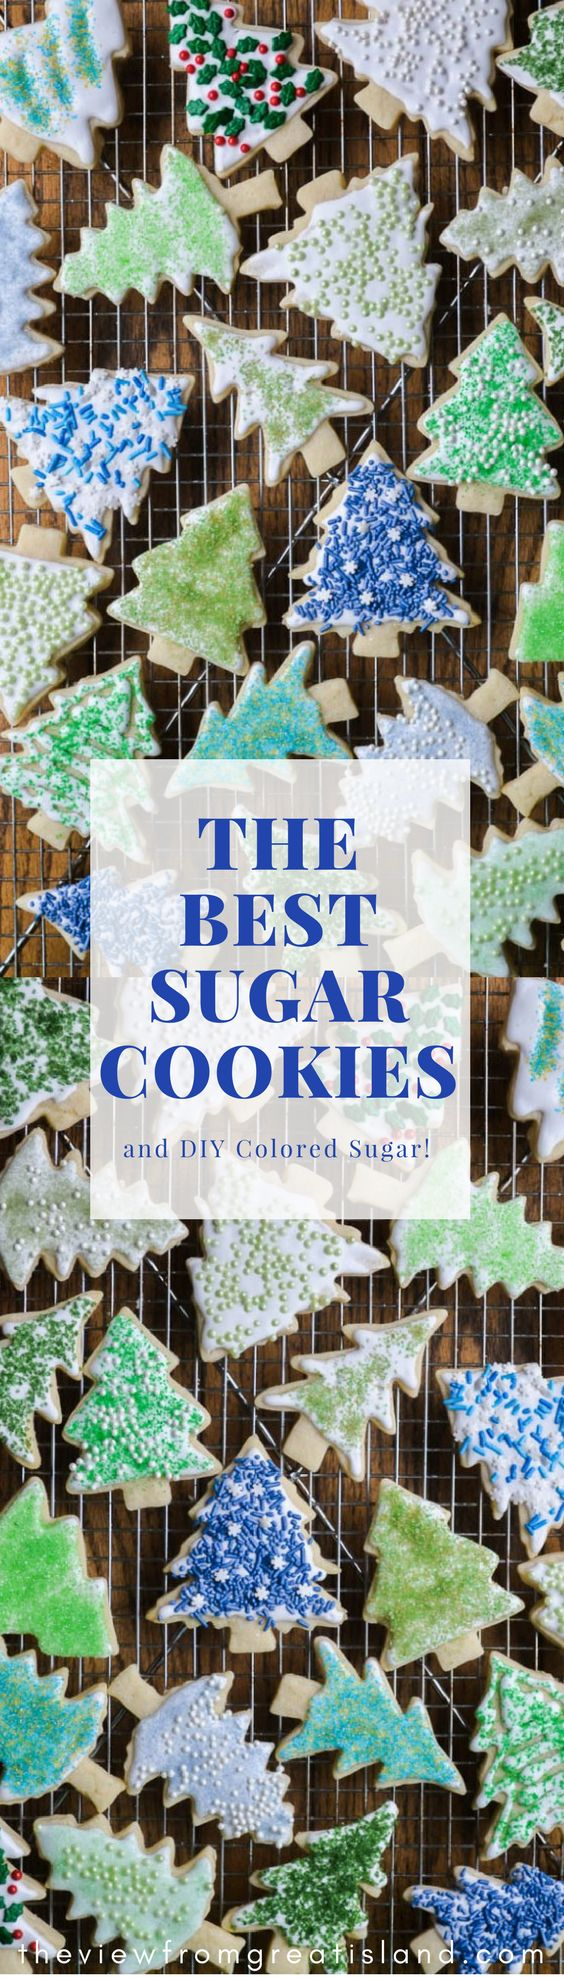 These quick and easy Holiday Sugar Cookies are such fun to decorate, and a joy to give out to friends and family this season. I show you how to make your own diy colored sugar, too, so you can get as creative as you wish! ♛BOUTIQUE CHIC♛